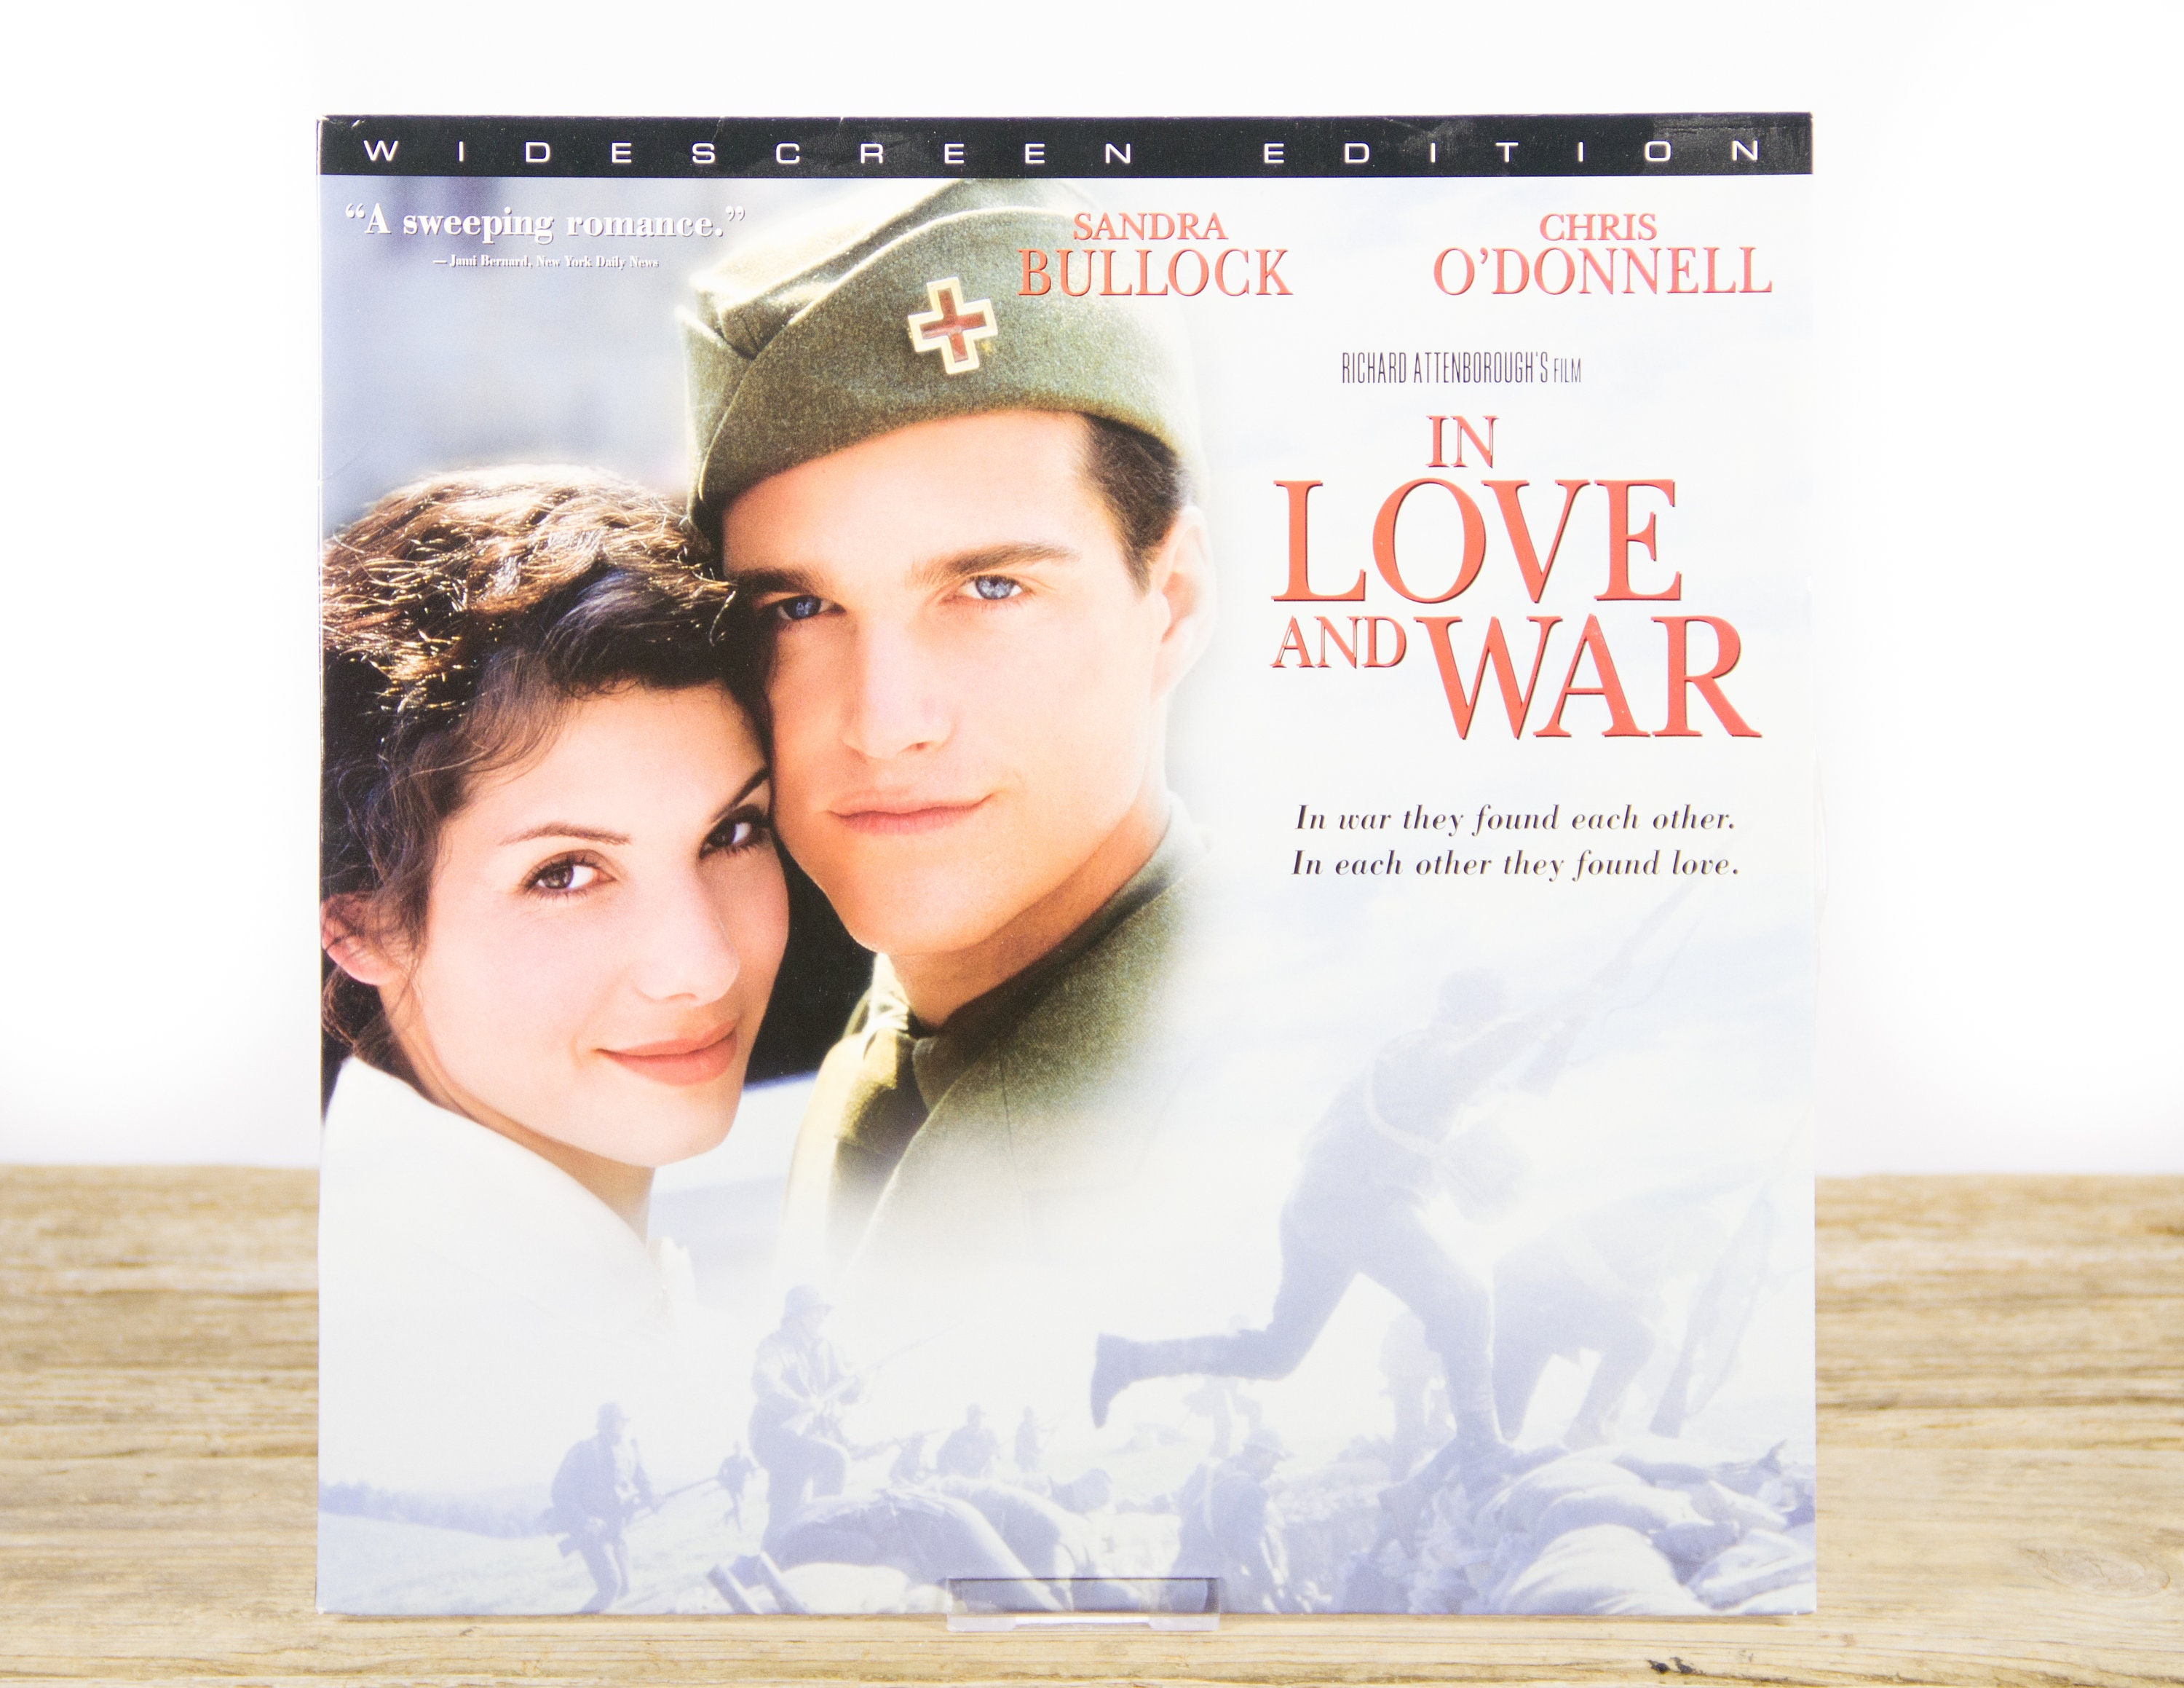 Vintage In Love And War Laserdisc Movie Vintage Laser Disc Movies Movie Theater Decor Movie Room Decor Movie Posters 90s Decor